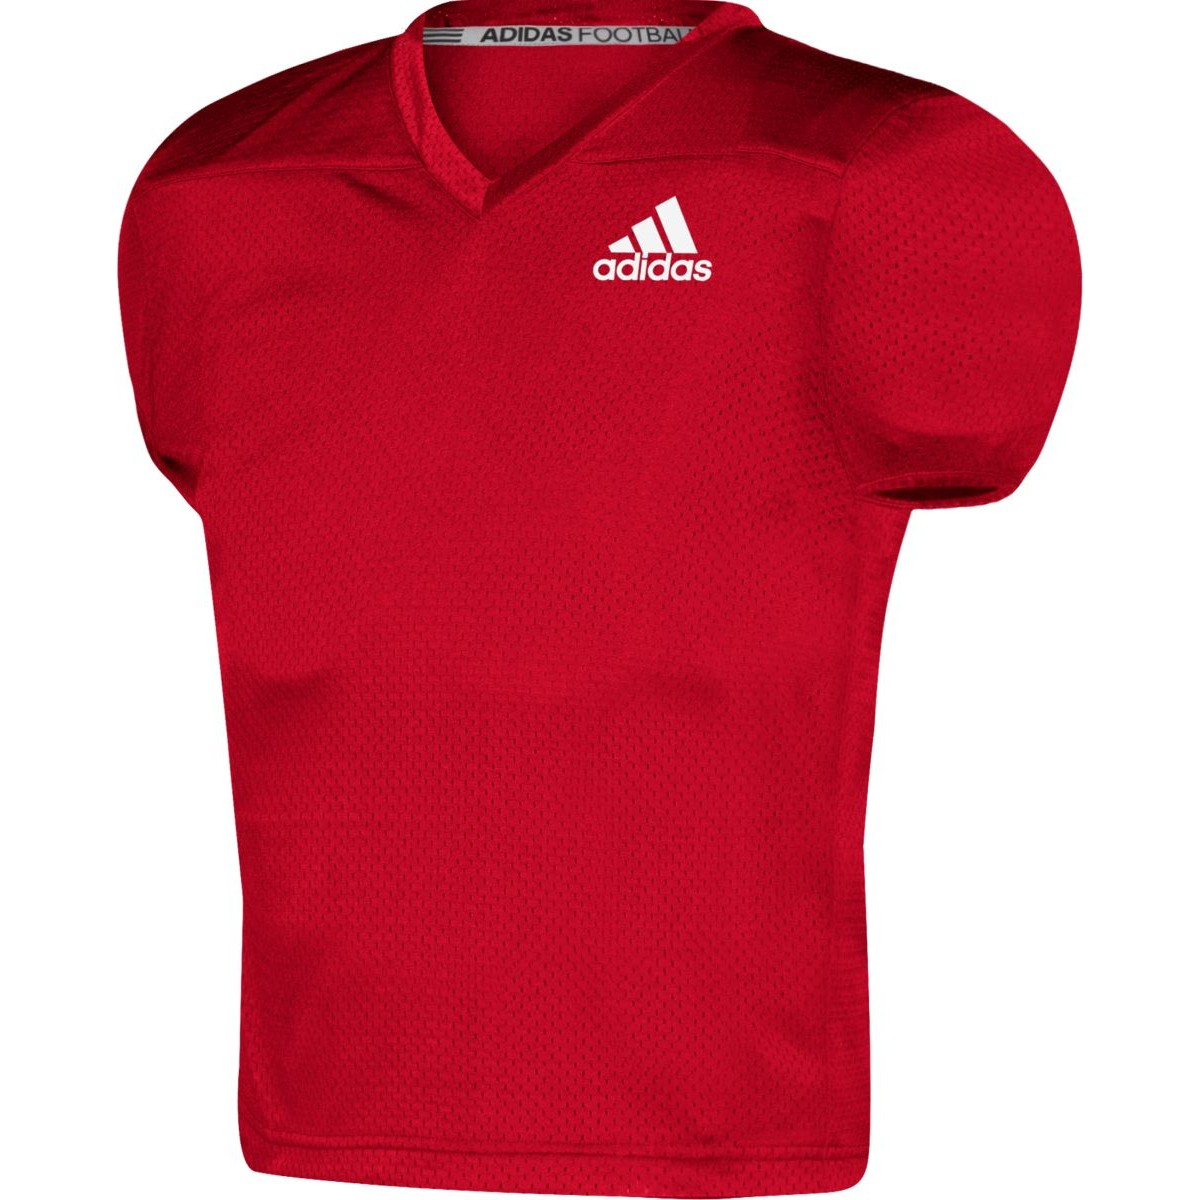 Adidas Youth Audible 2.0 Practice Football Jersey